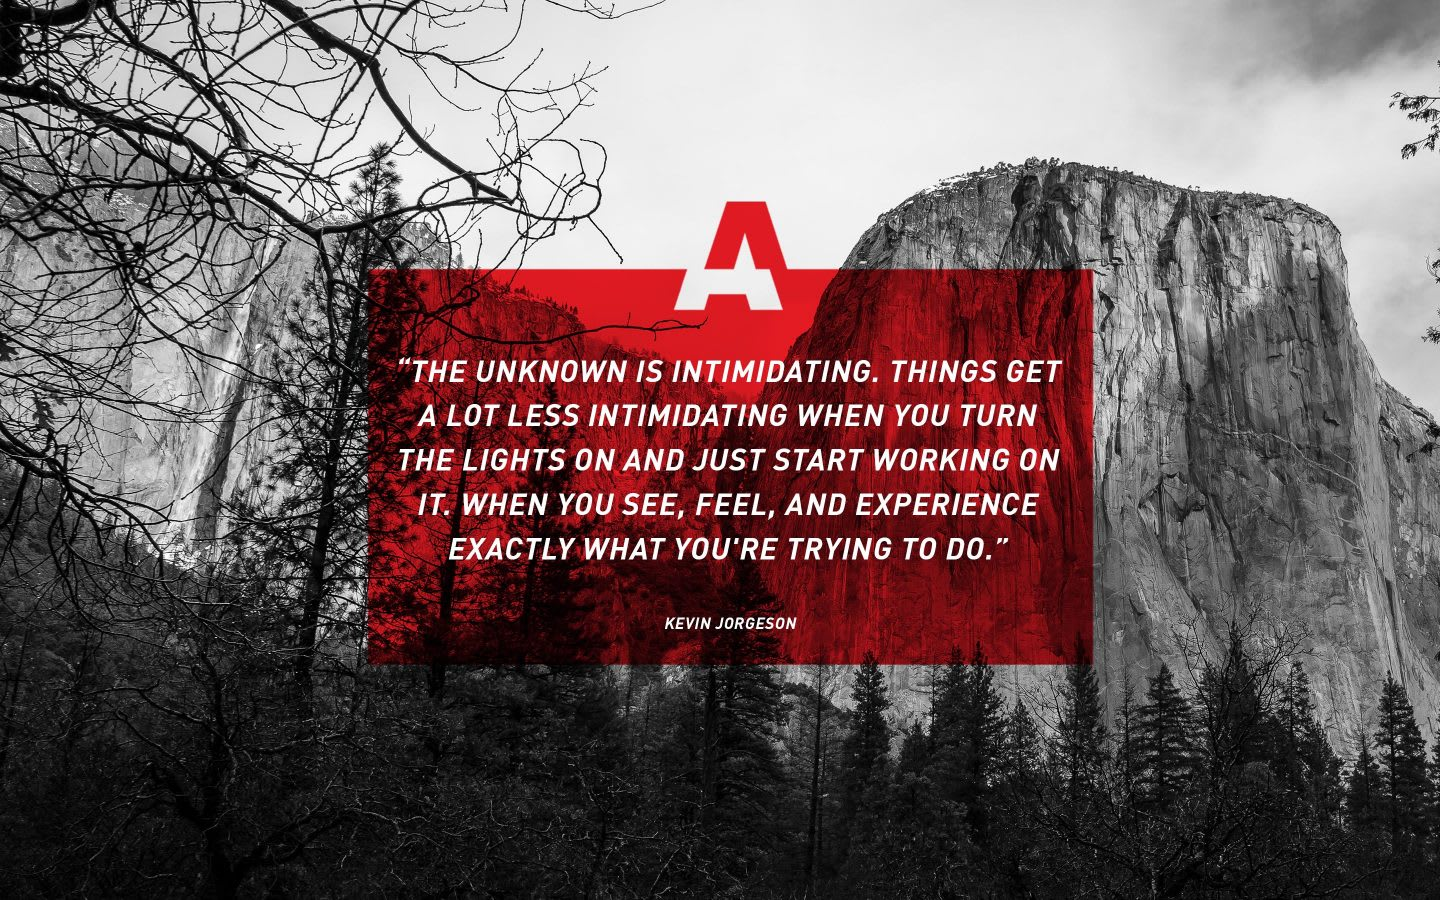 adidas free-climber Kevin Jorgeson quote, adidas, athlete, inspiration, motivation, GamePlan A